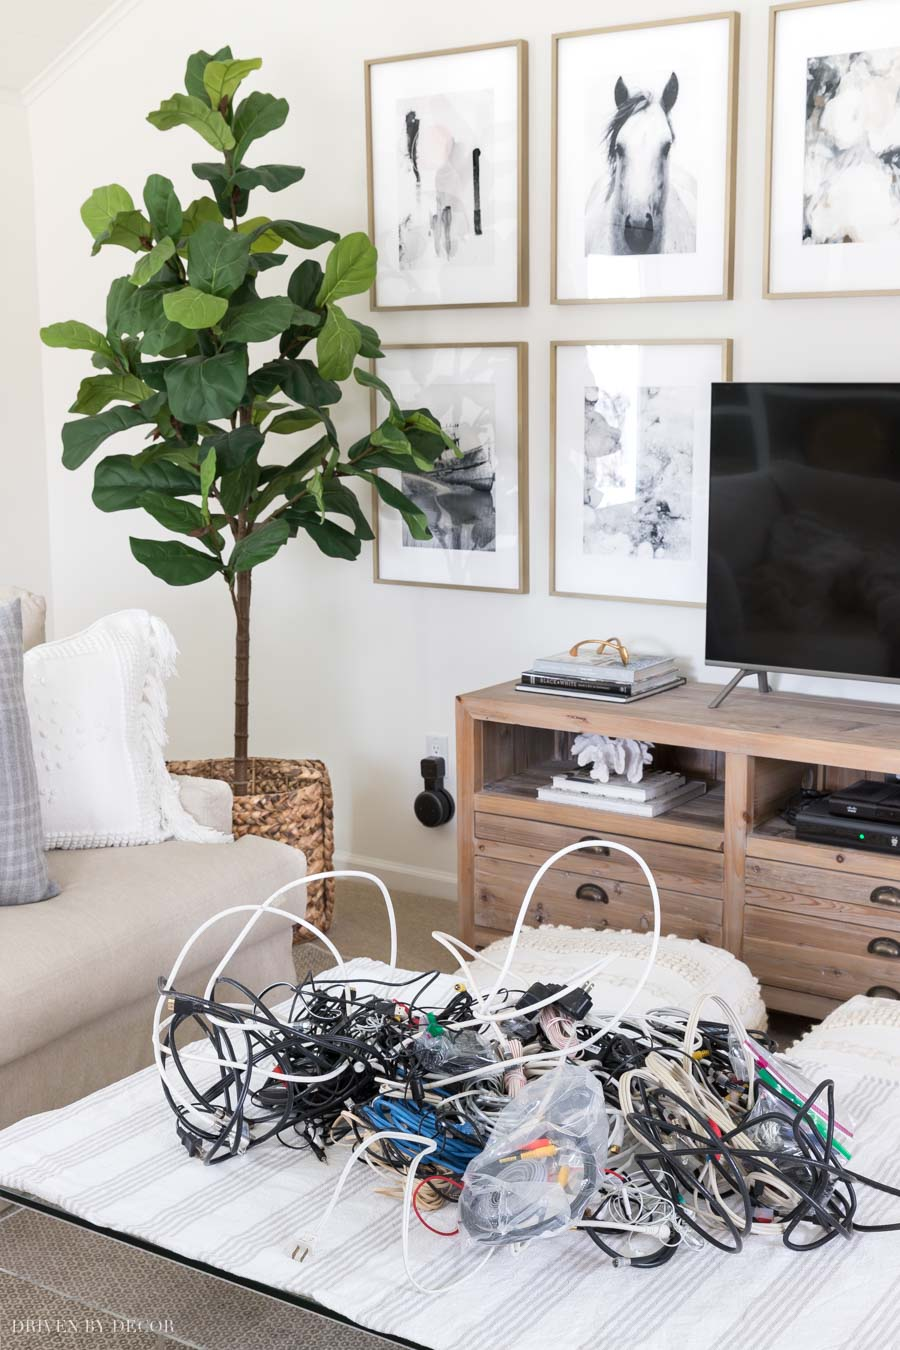 Great tips on how to organize all of your cords!